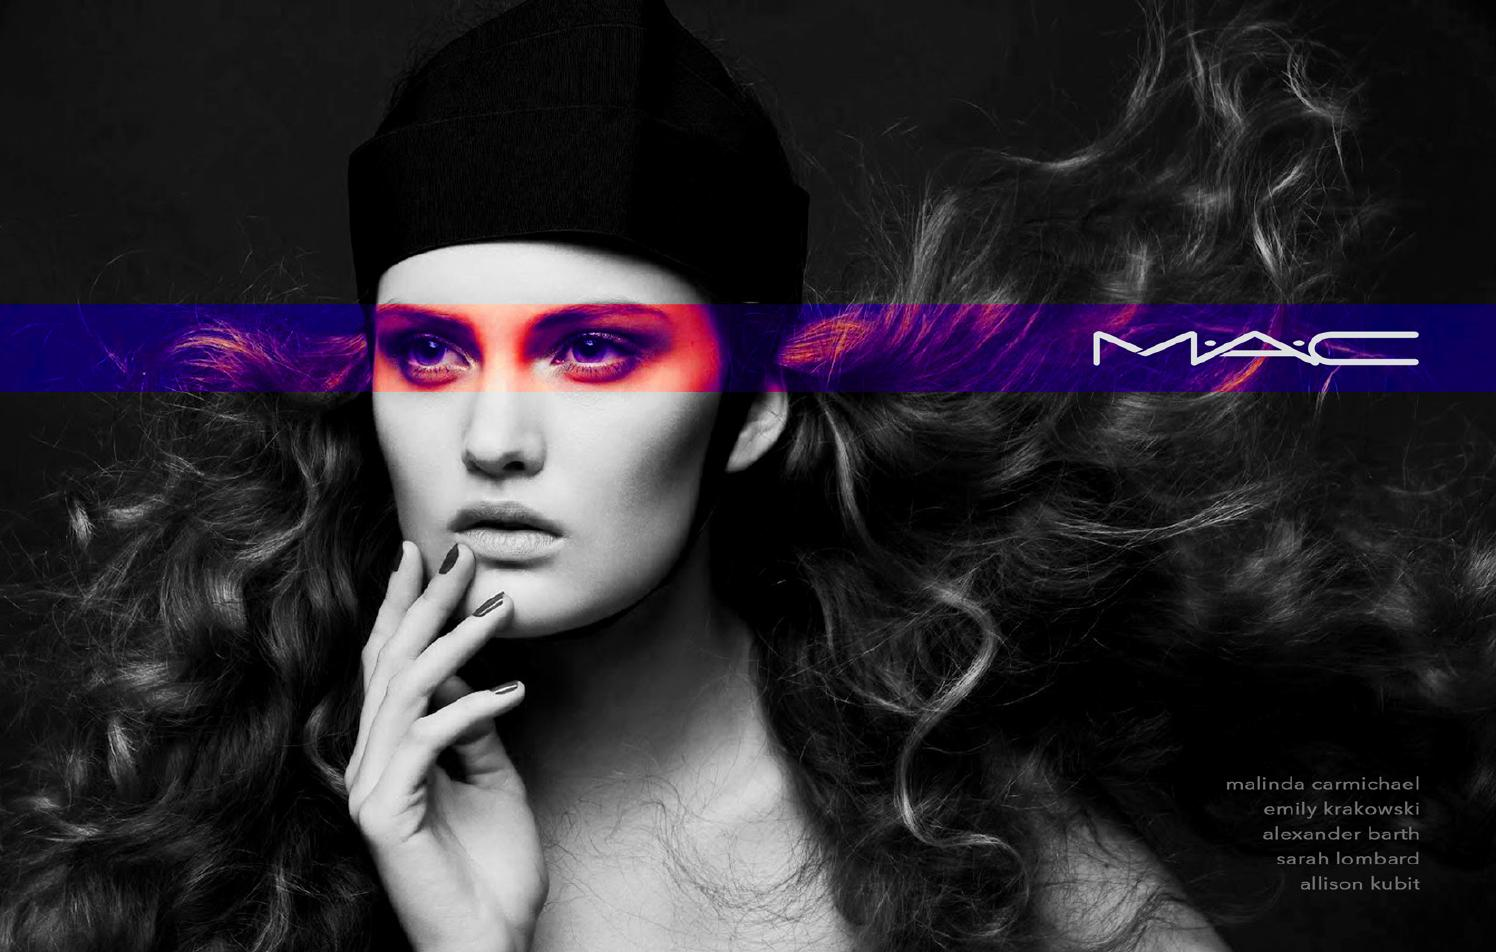 M•A•C Cosmetics Advertising Campaign by Sarah Lombard - Issuu